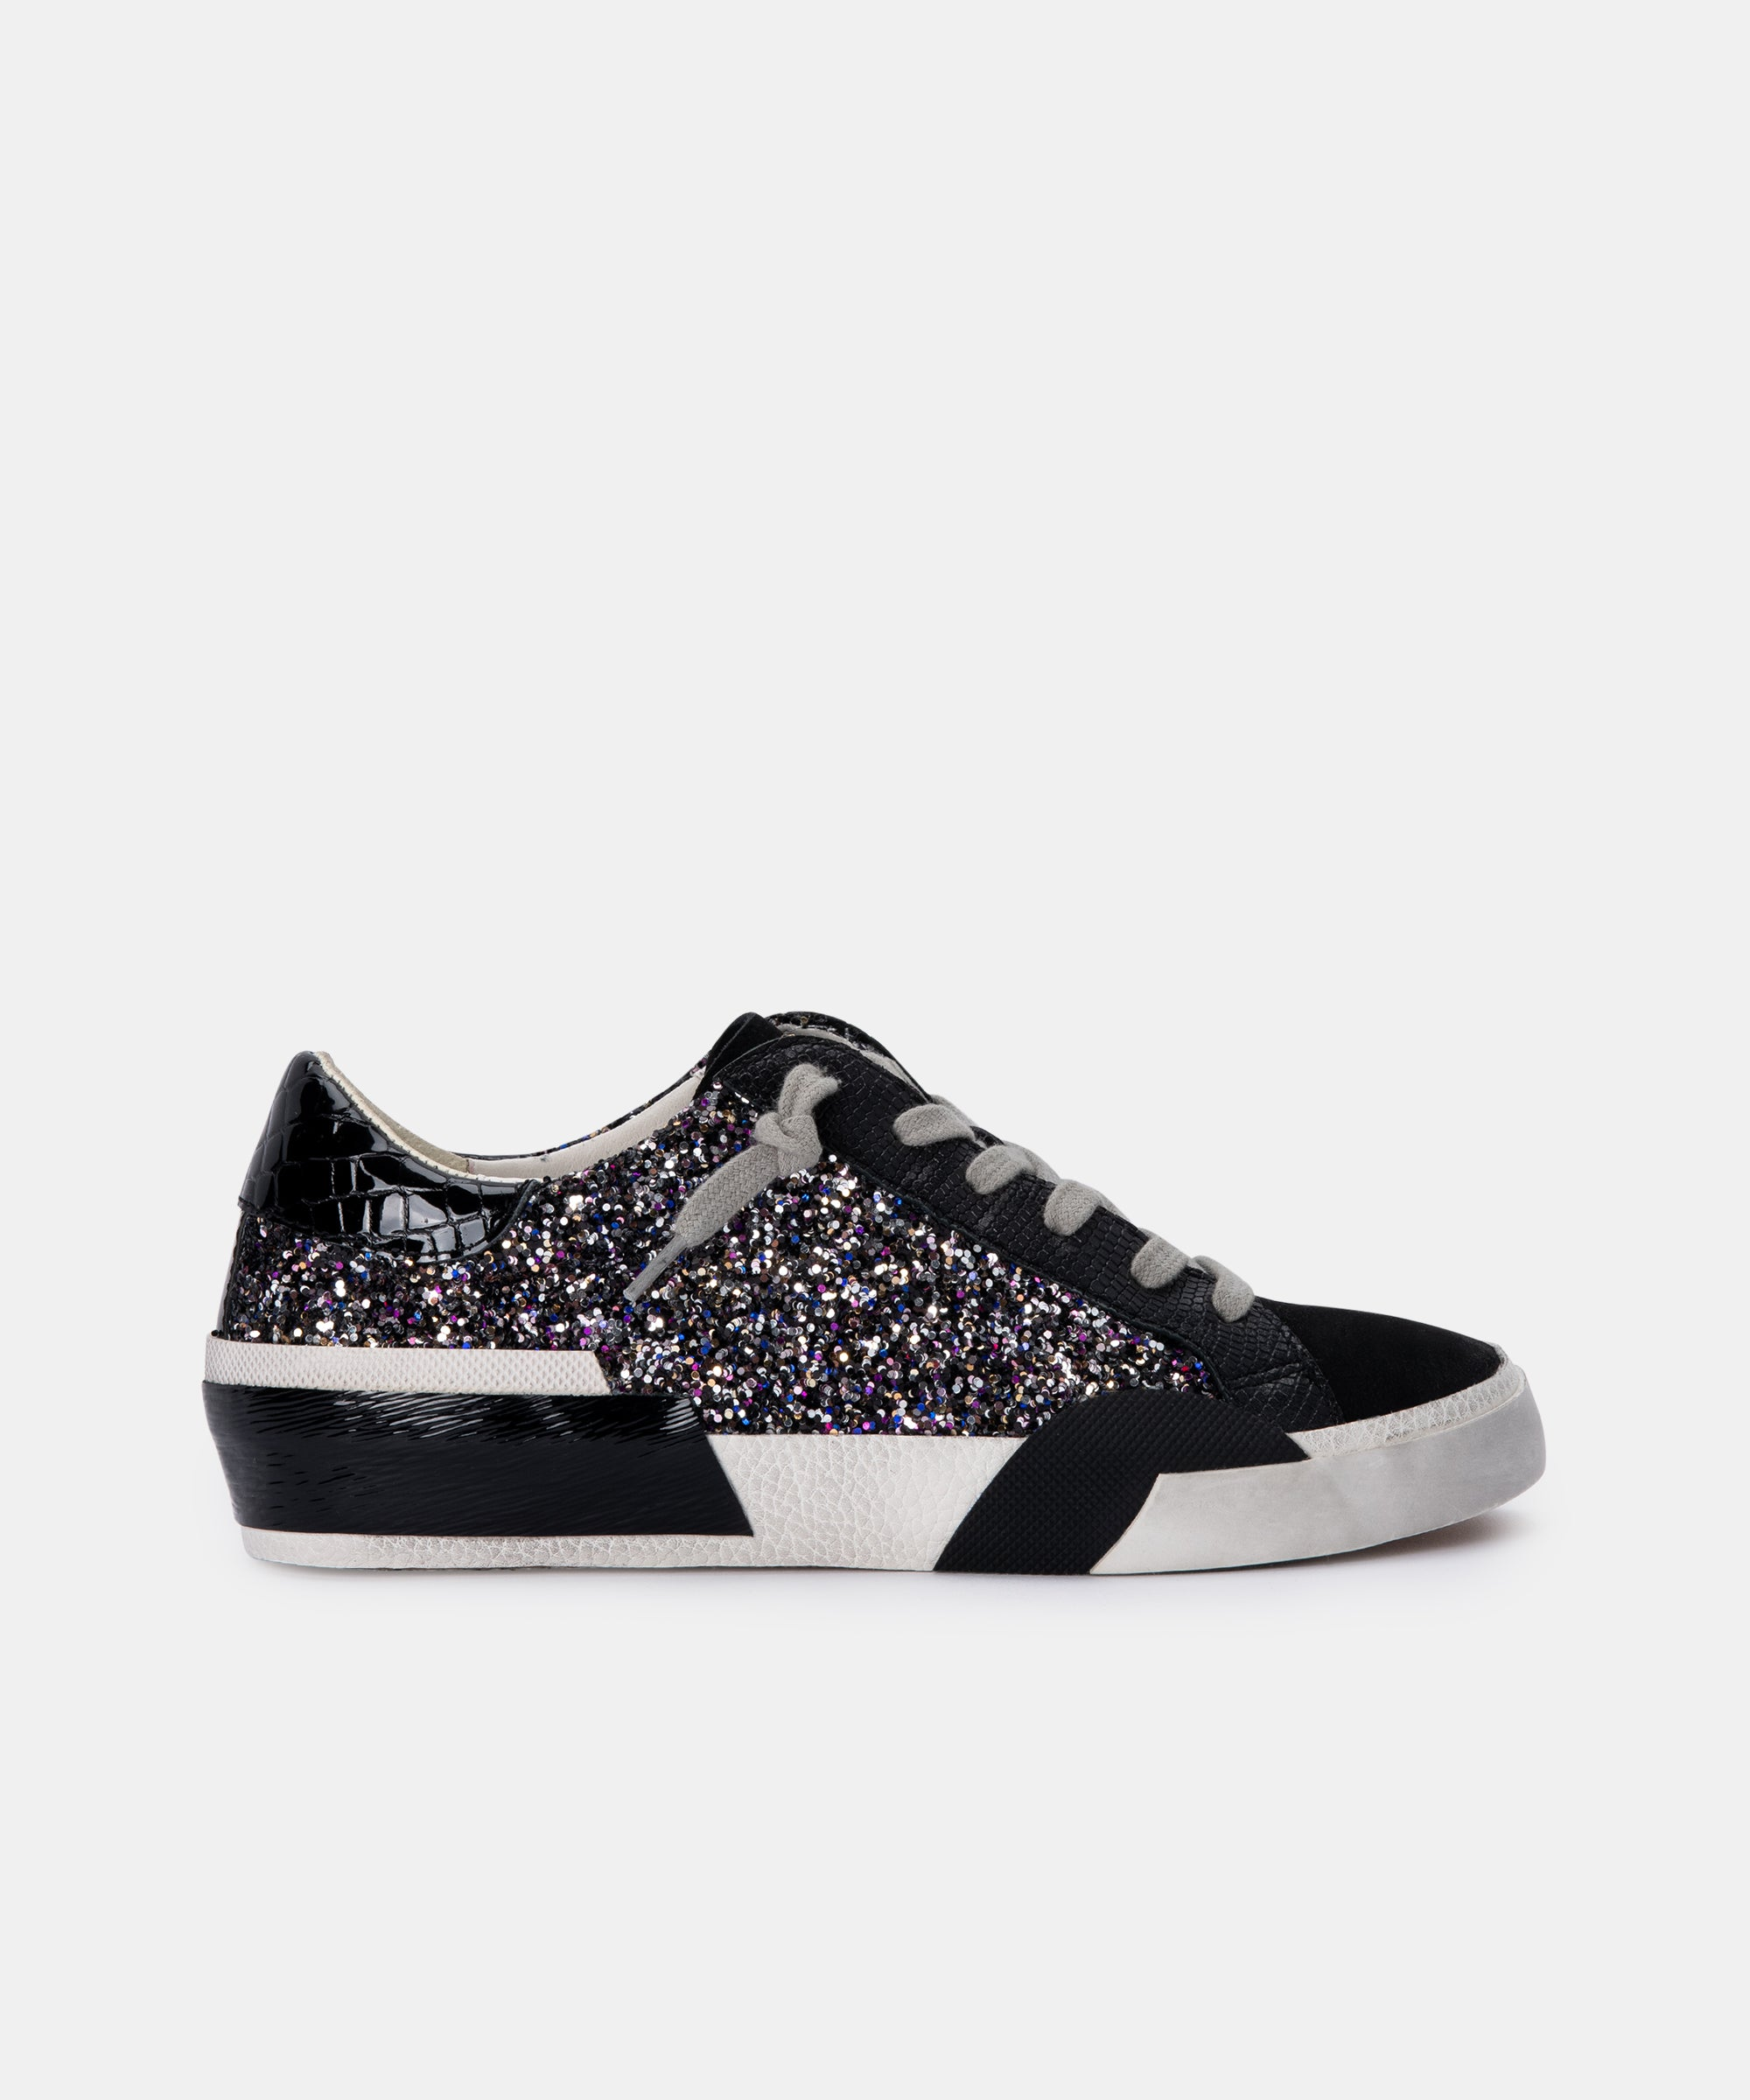 ZINA SNEAKERS IN BLACK METALLIC GLITTER